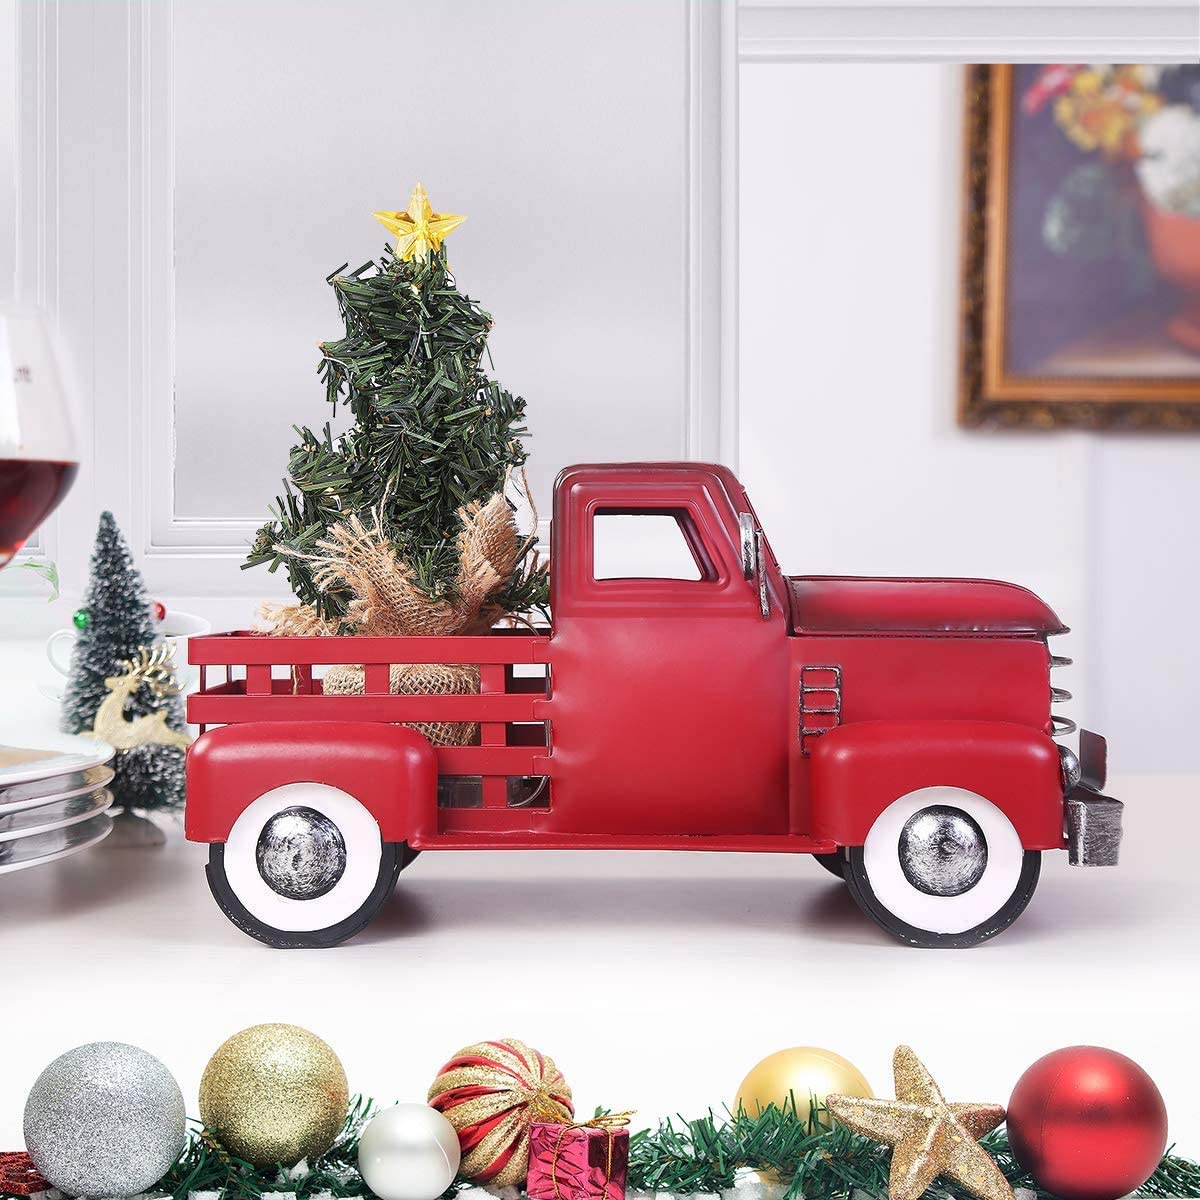 MH Christmas Truck with Tree Ornament Set, 3AA Battery Operated 15 pcs Warm White LEDs Metal Pickup Truck Car for Christmas Decorations Table Top Decor, Small